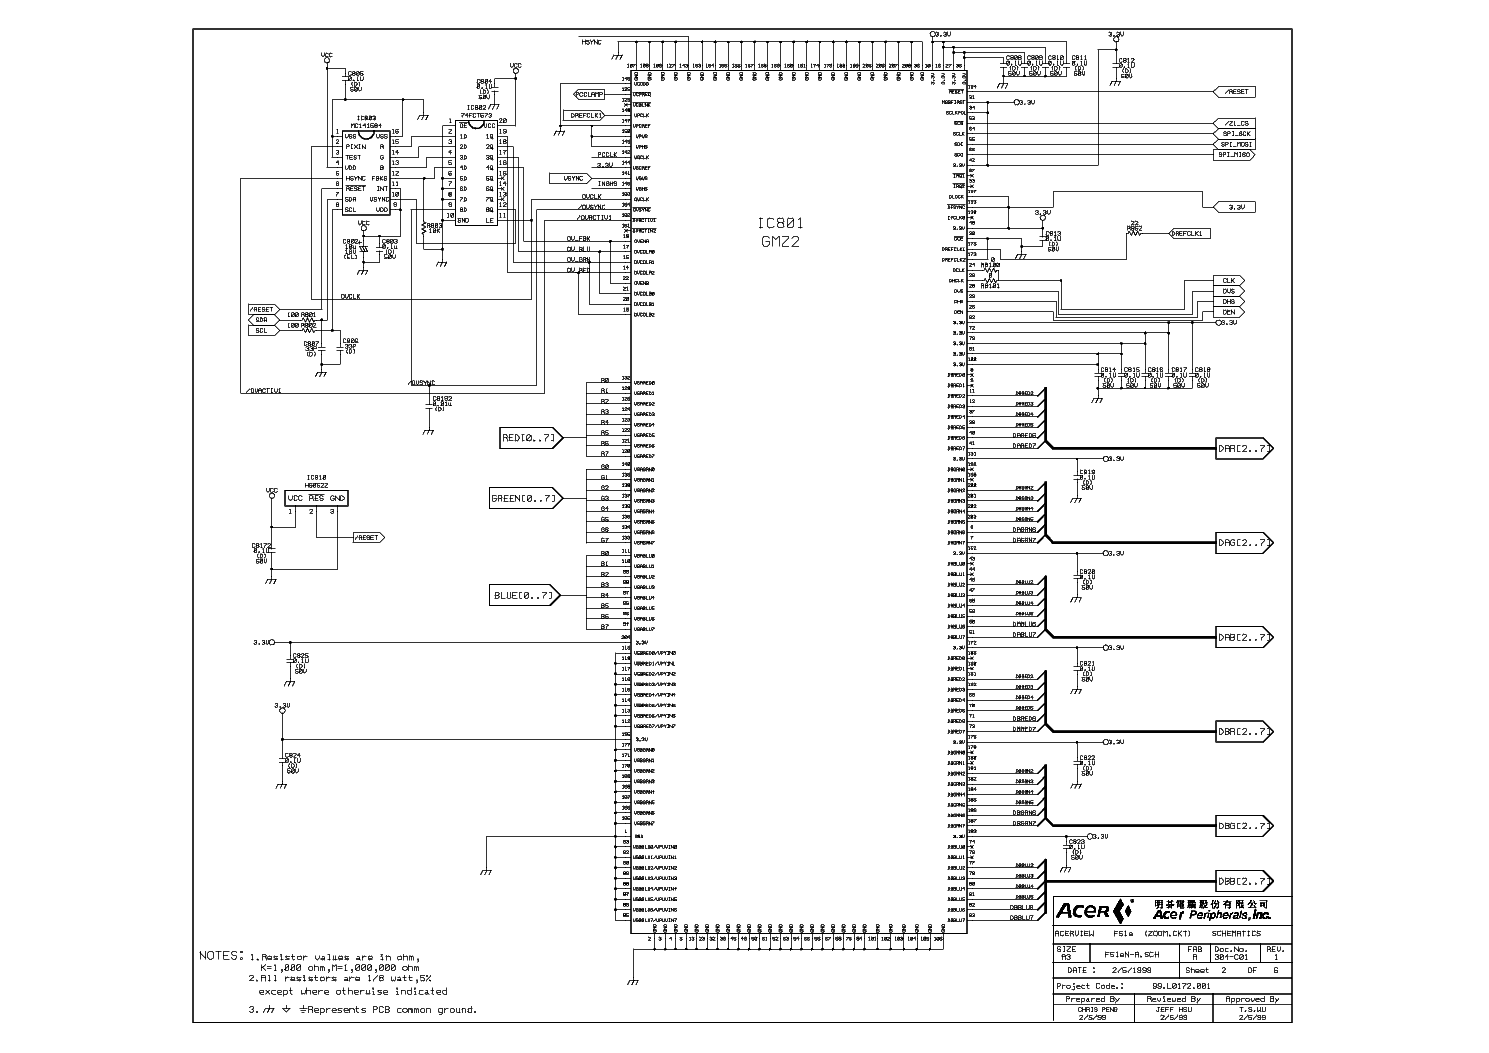 ACER ACERVIEW F51E SCH Service Manual download, schematics